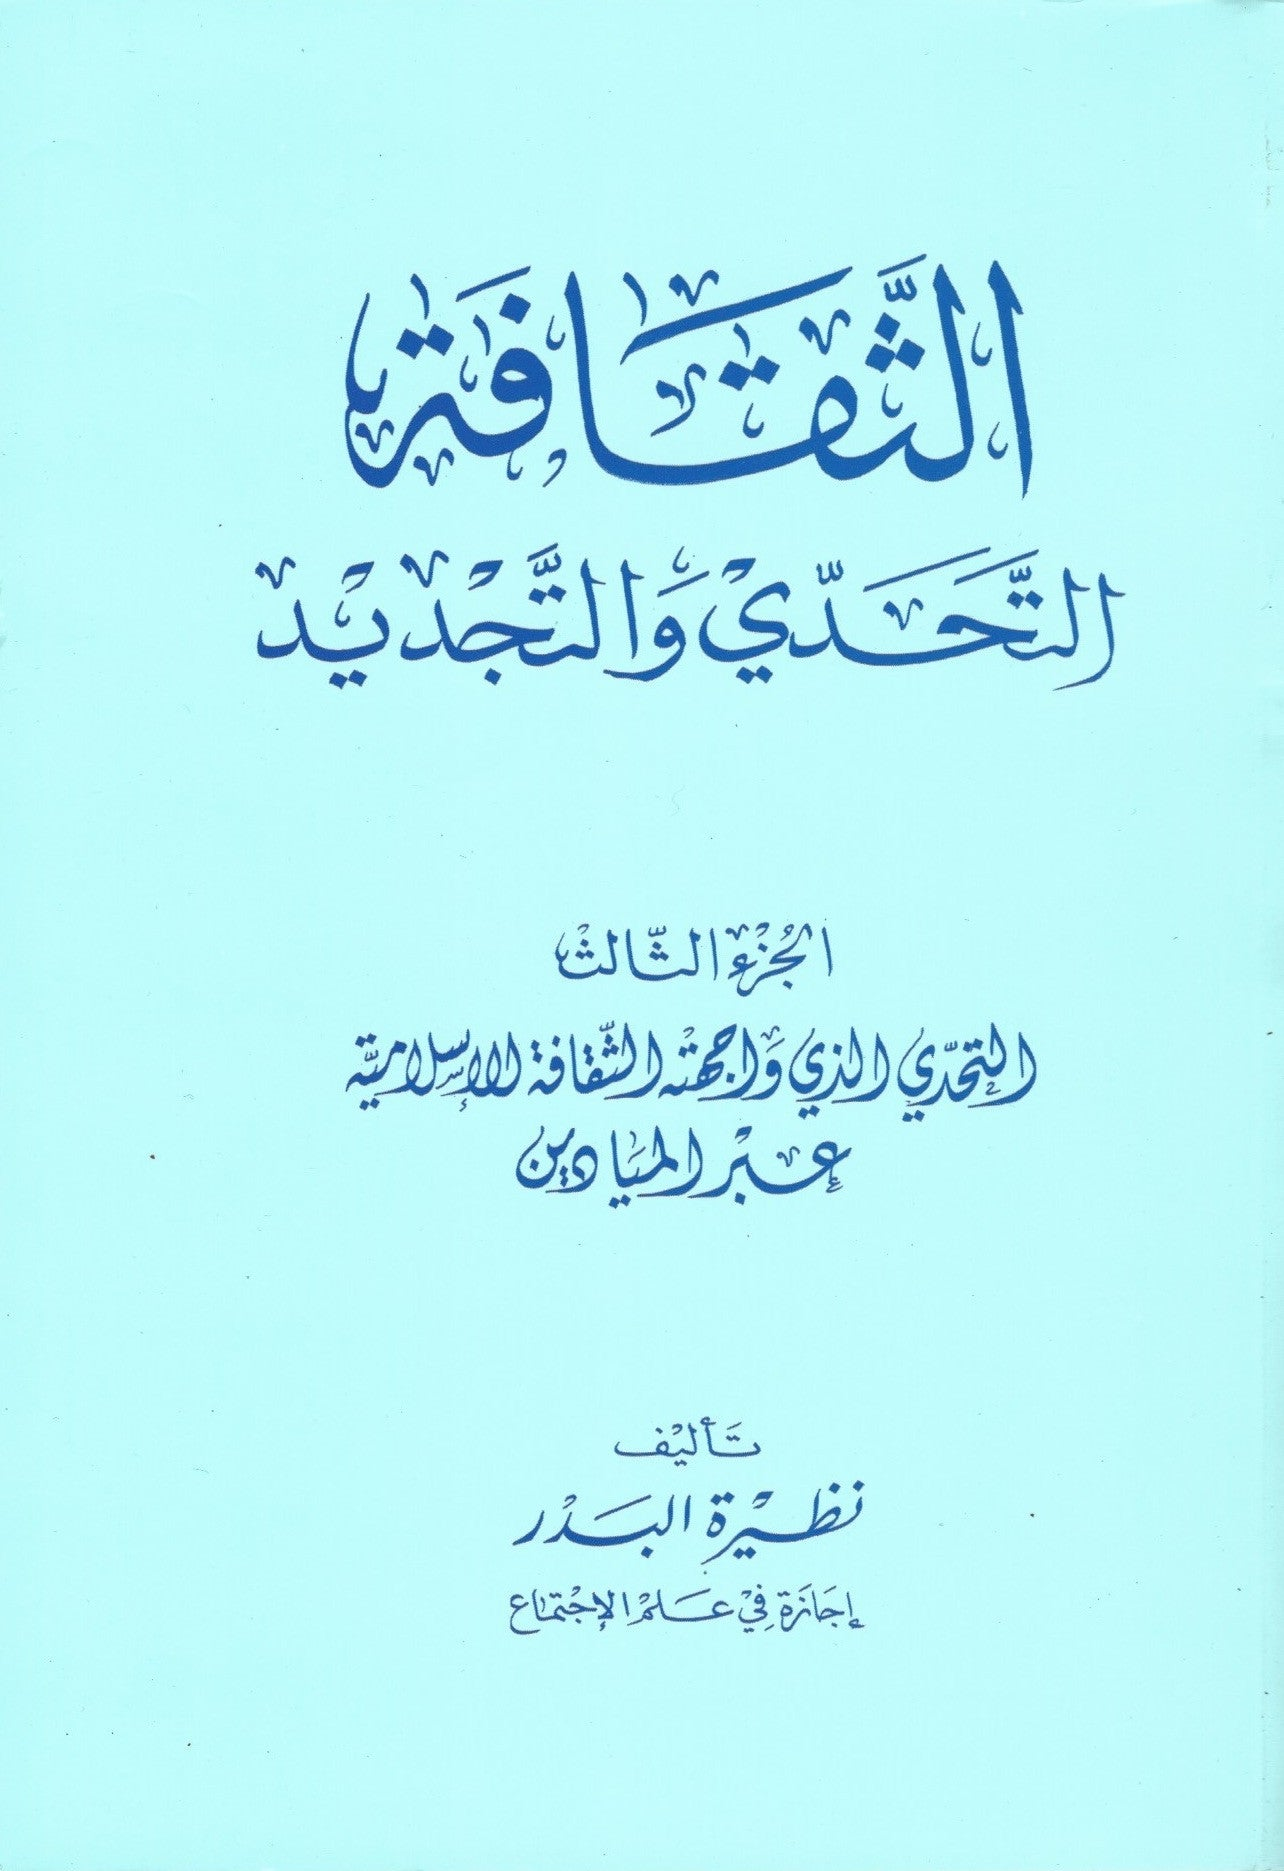 الثقافة: التحدّي والتجديد (Al Thaqafi - 4 volumes) , Shaam - Daybreak Press Global Bookshop, Daybreak Press Global Bookshop  - 3